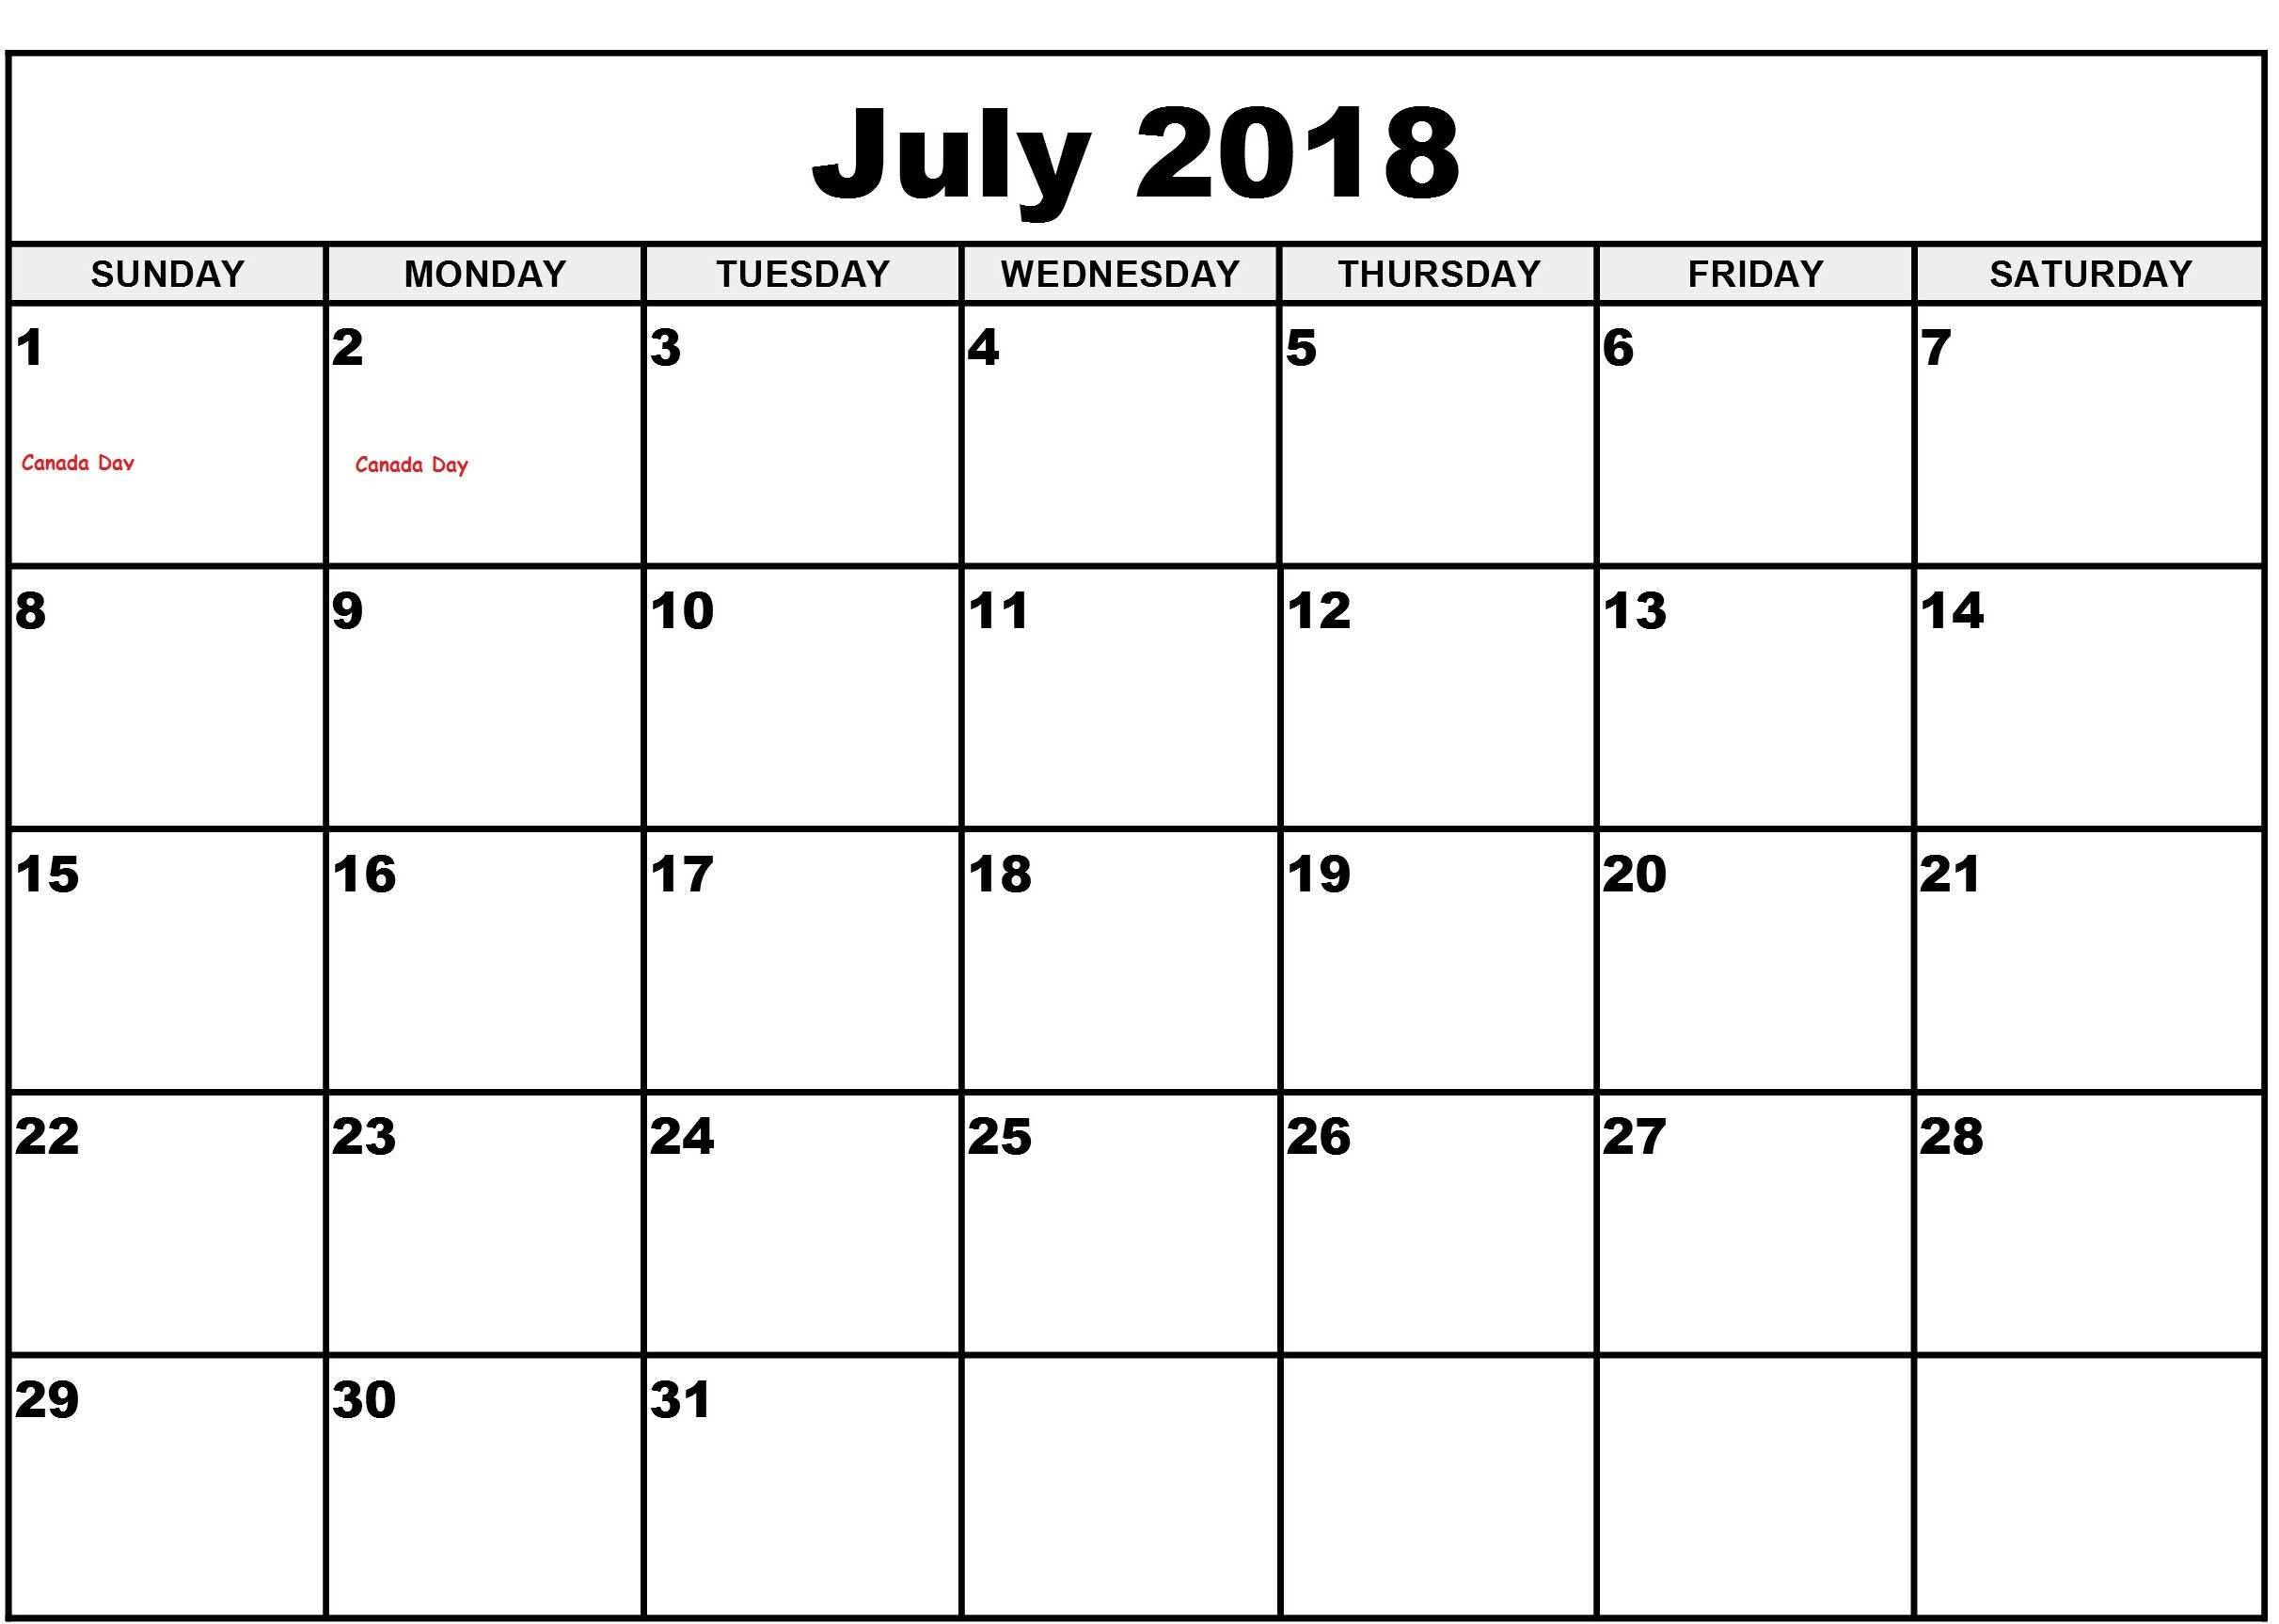 Pinprintable Calendar On July 2018 Calendar Holidays